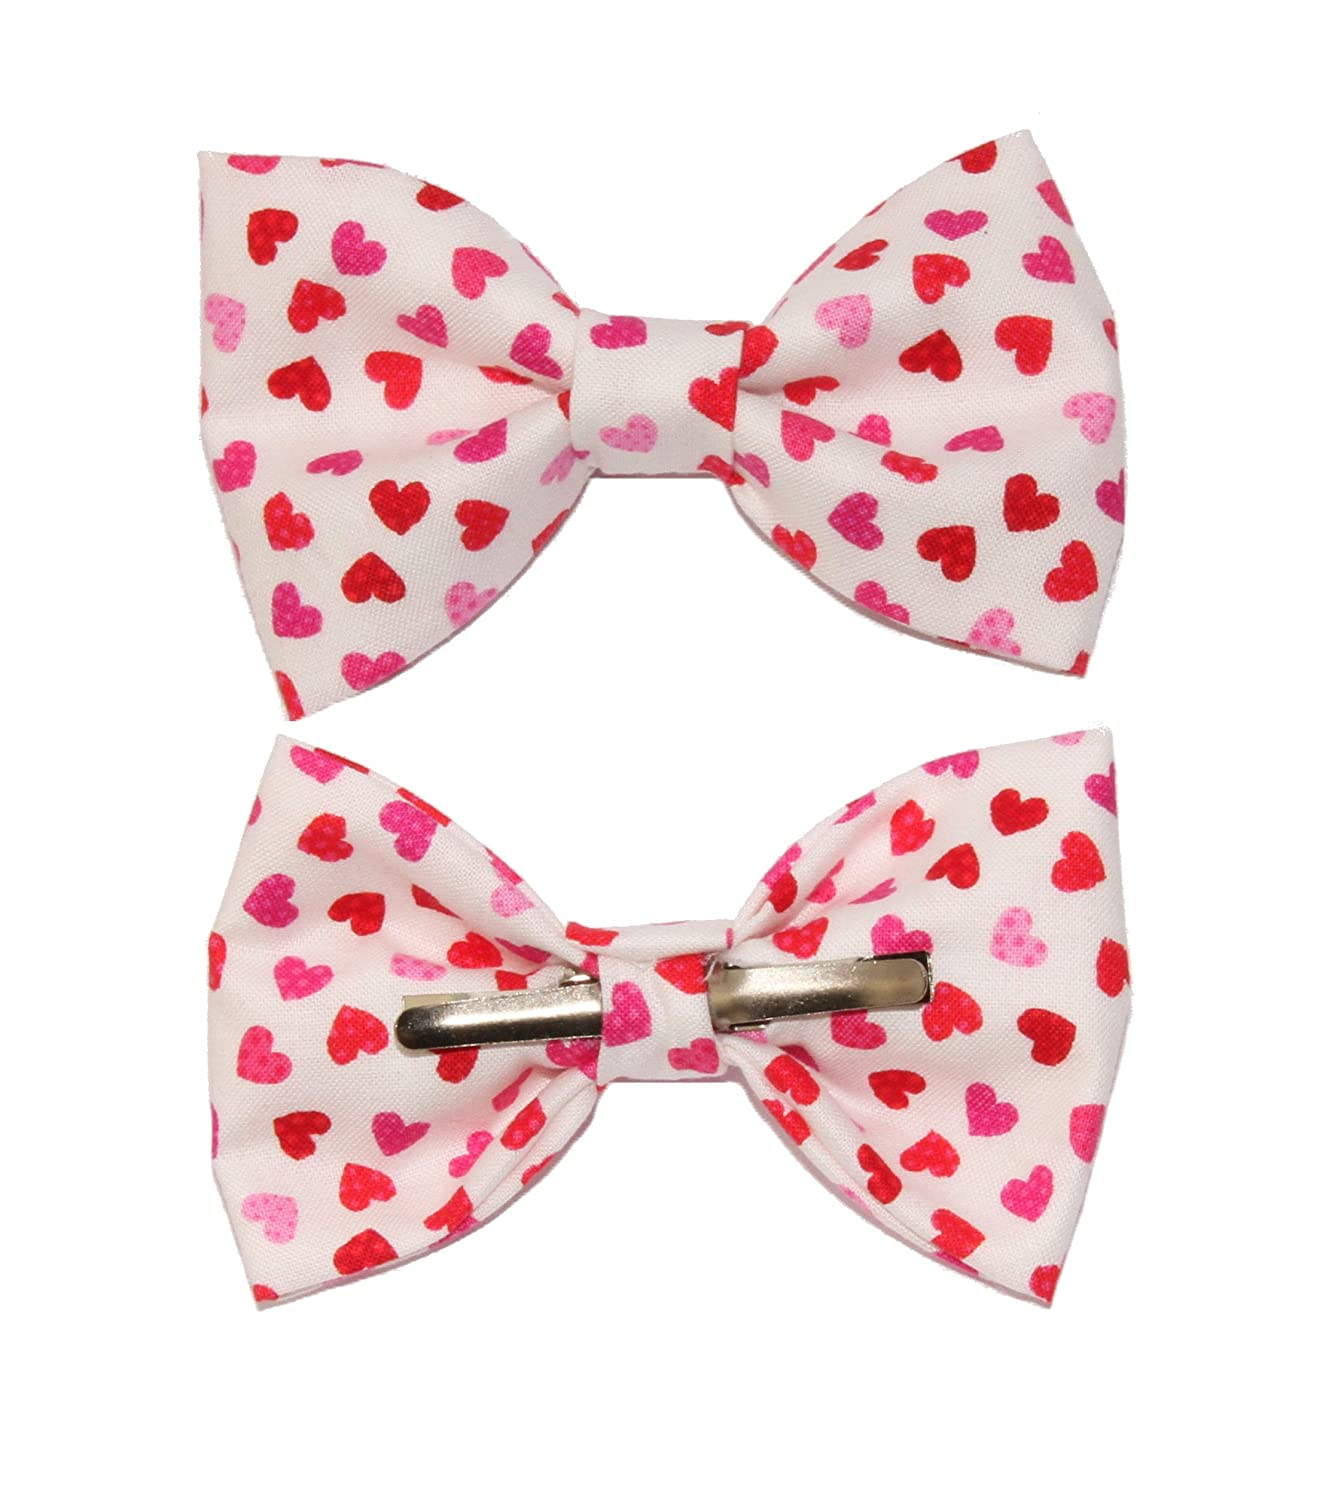 Toddler Boy 4T 5T Red Small Hearts Clip On Cotton Bow Tie